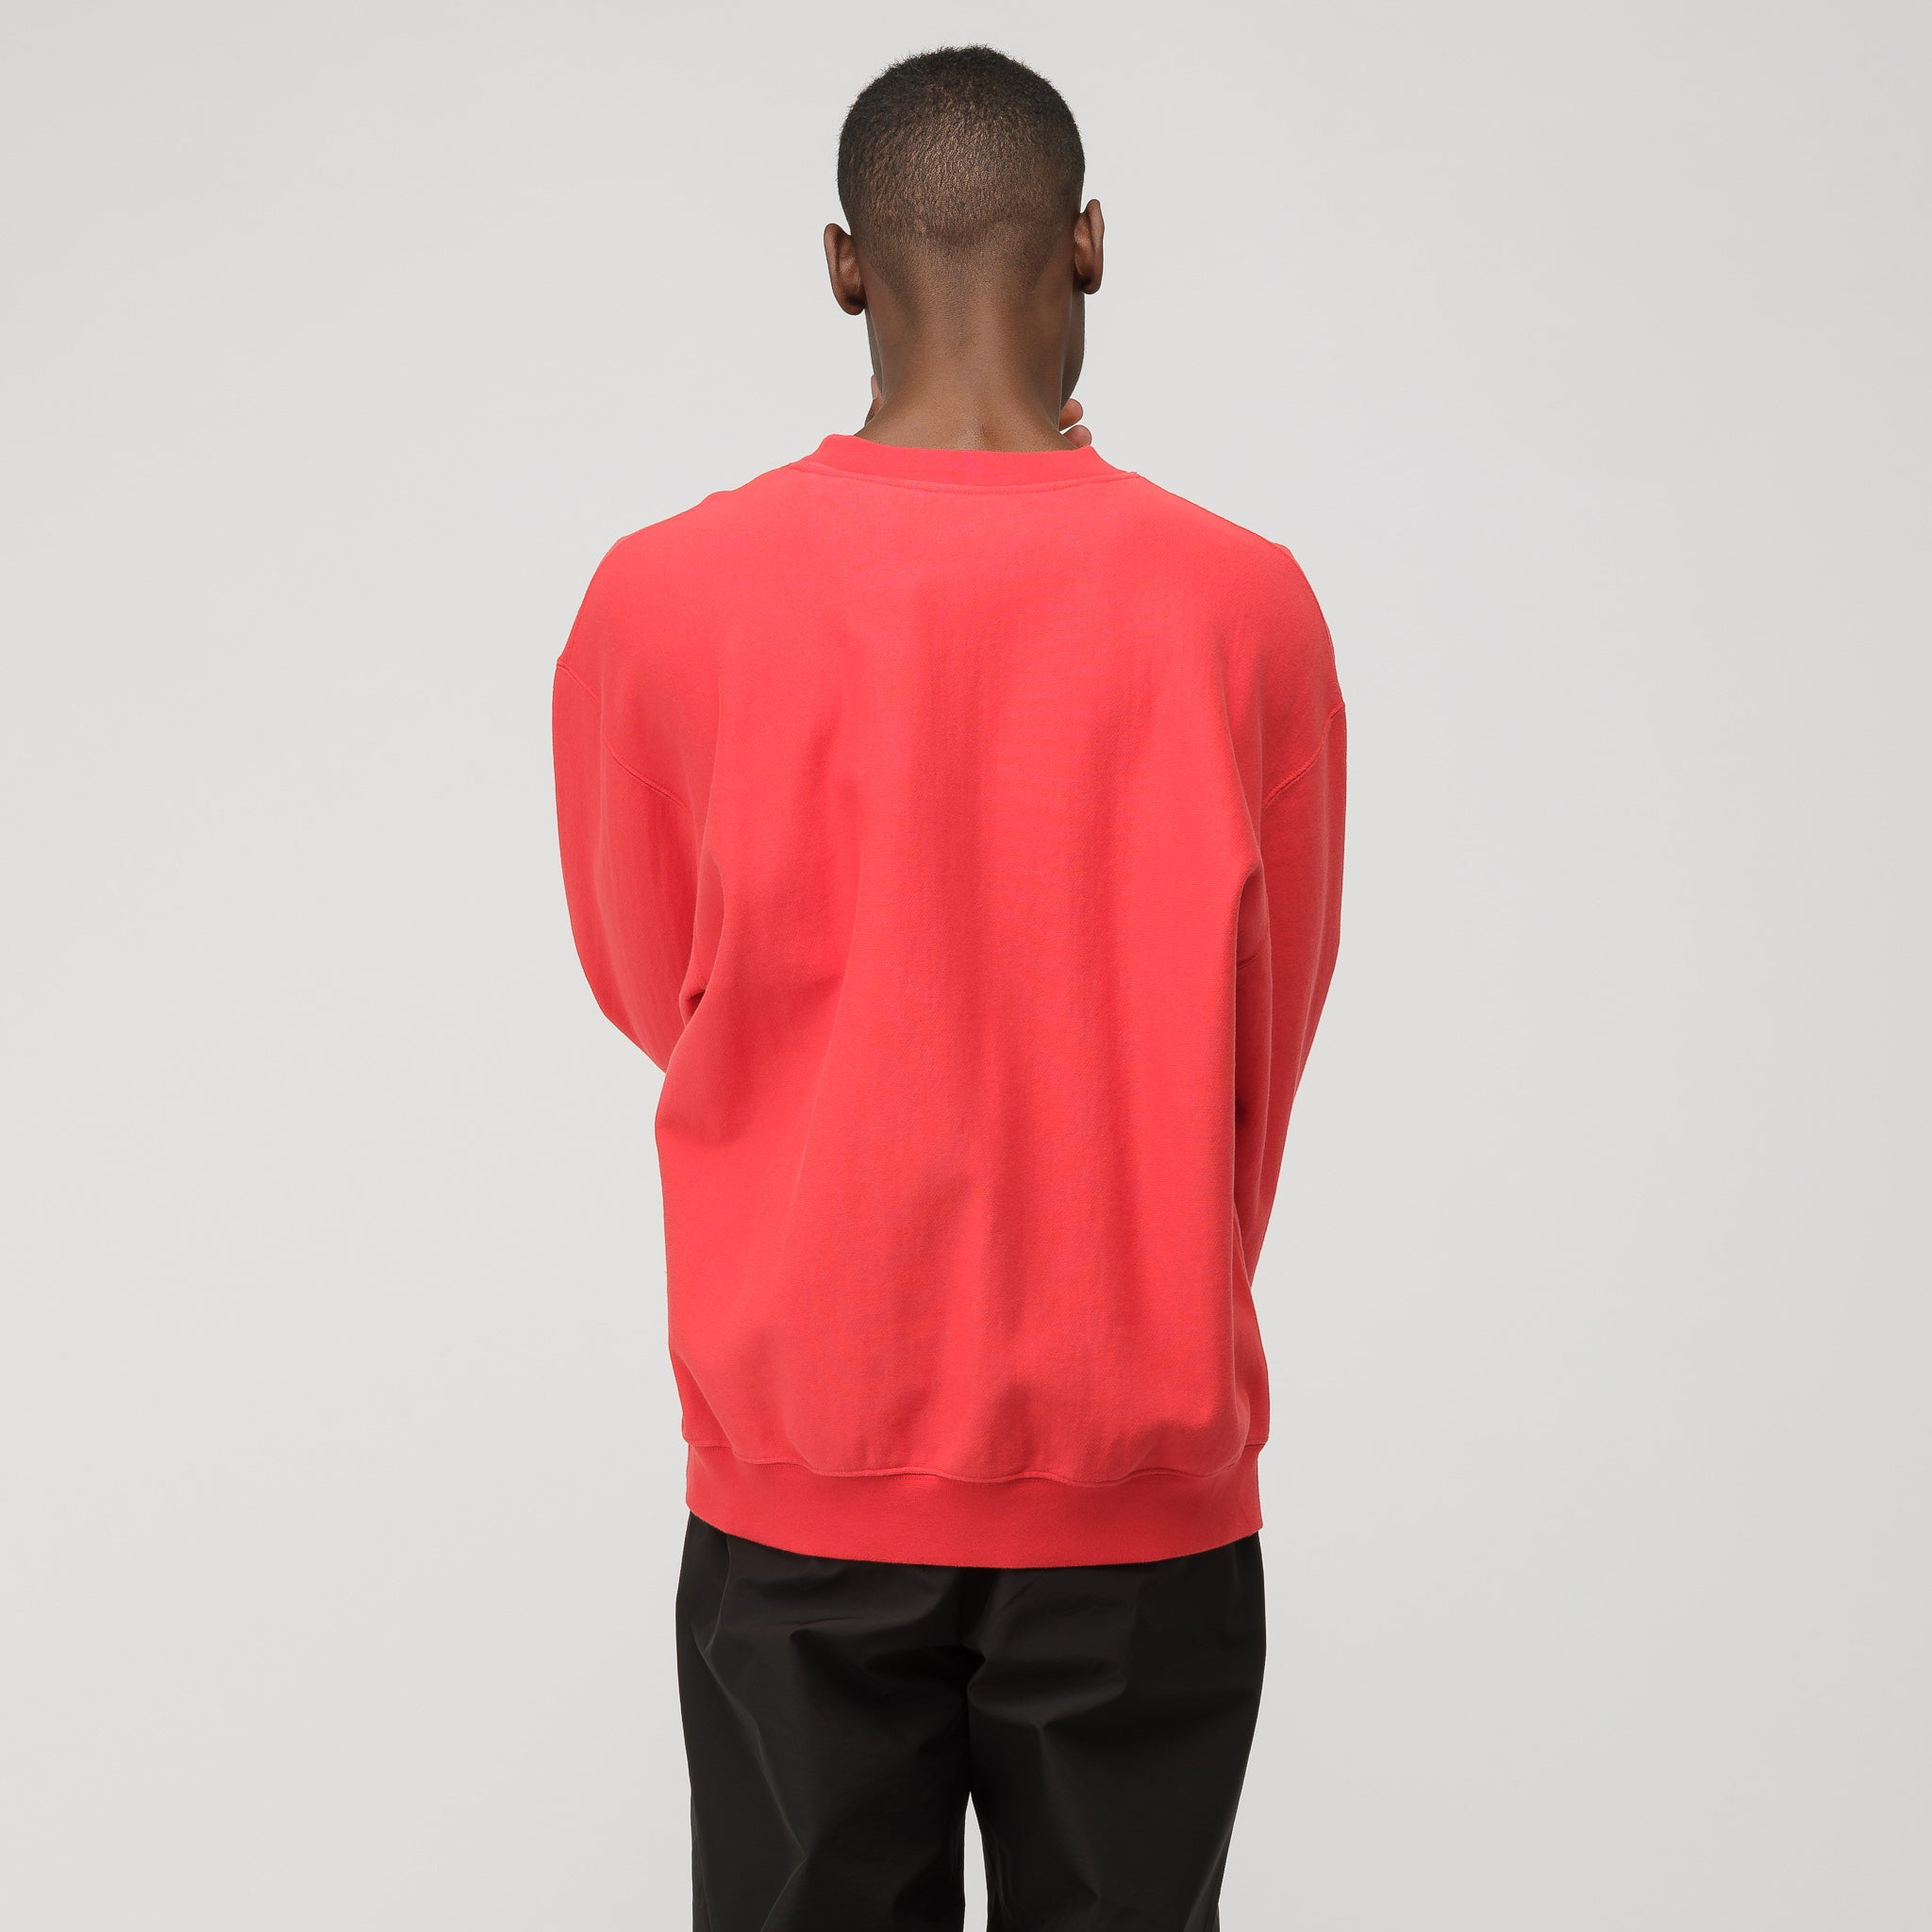 CTNMB Long Sleeve Crewneck in Red/White